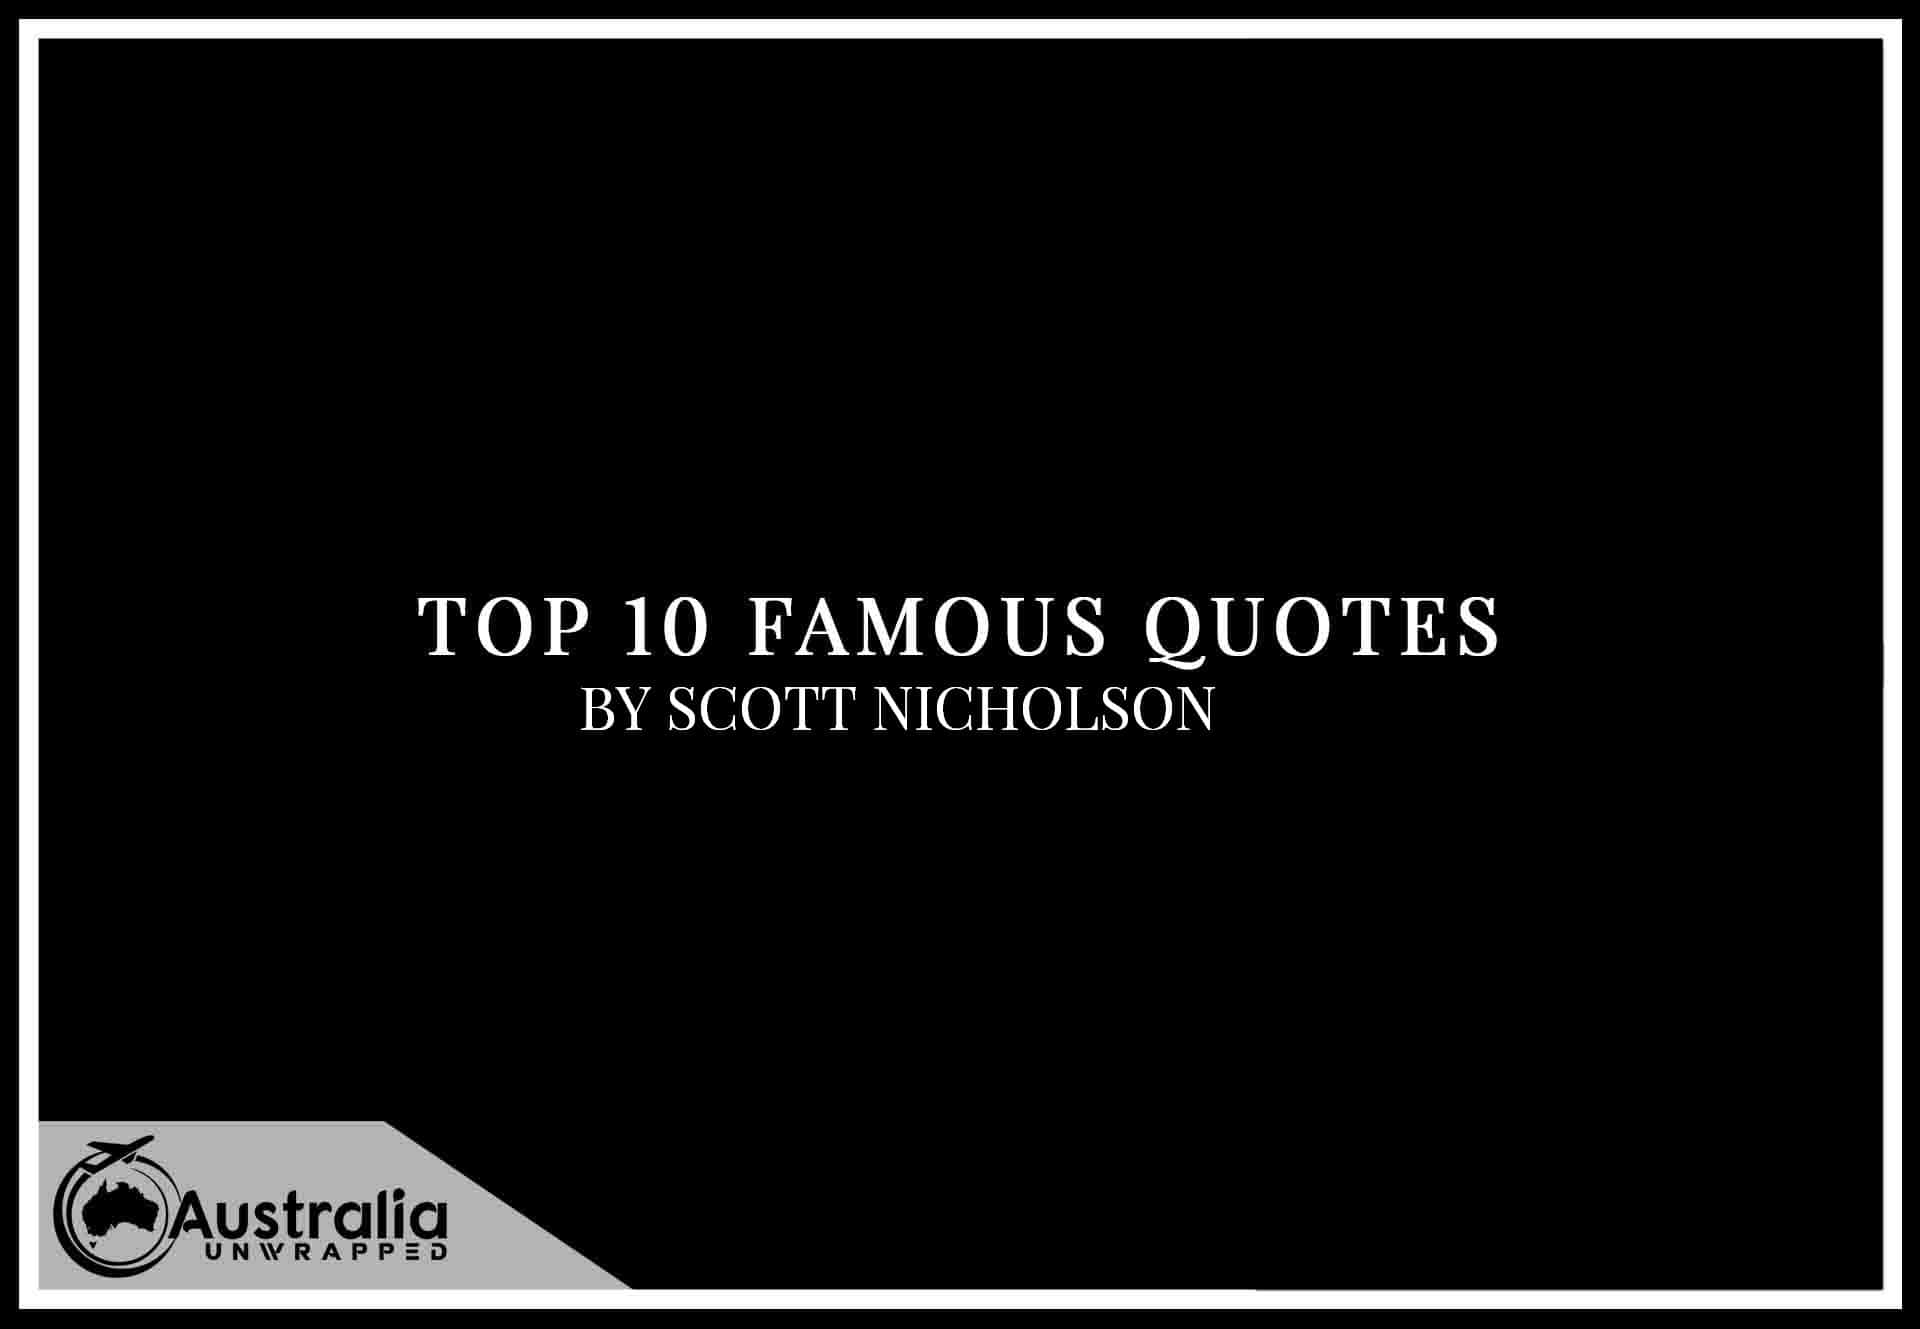 Top 10 Famous Quotes by Author Scott Nicholson